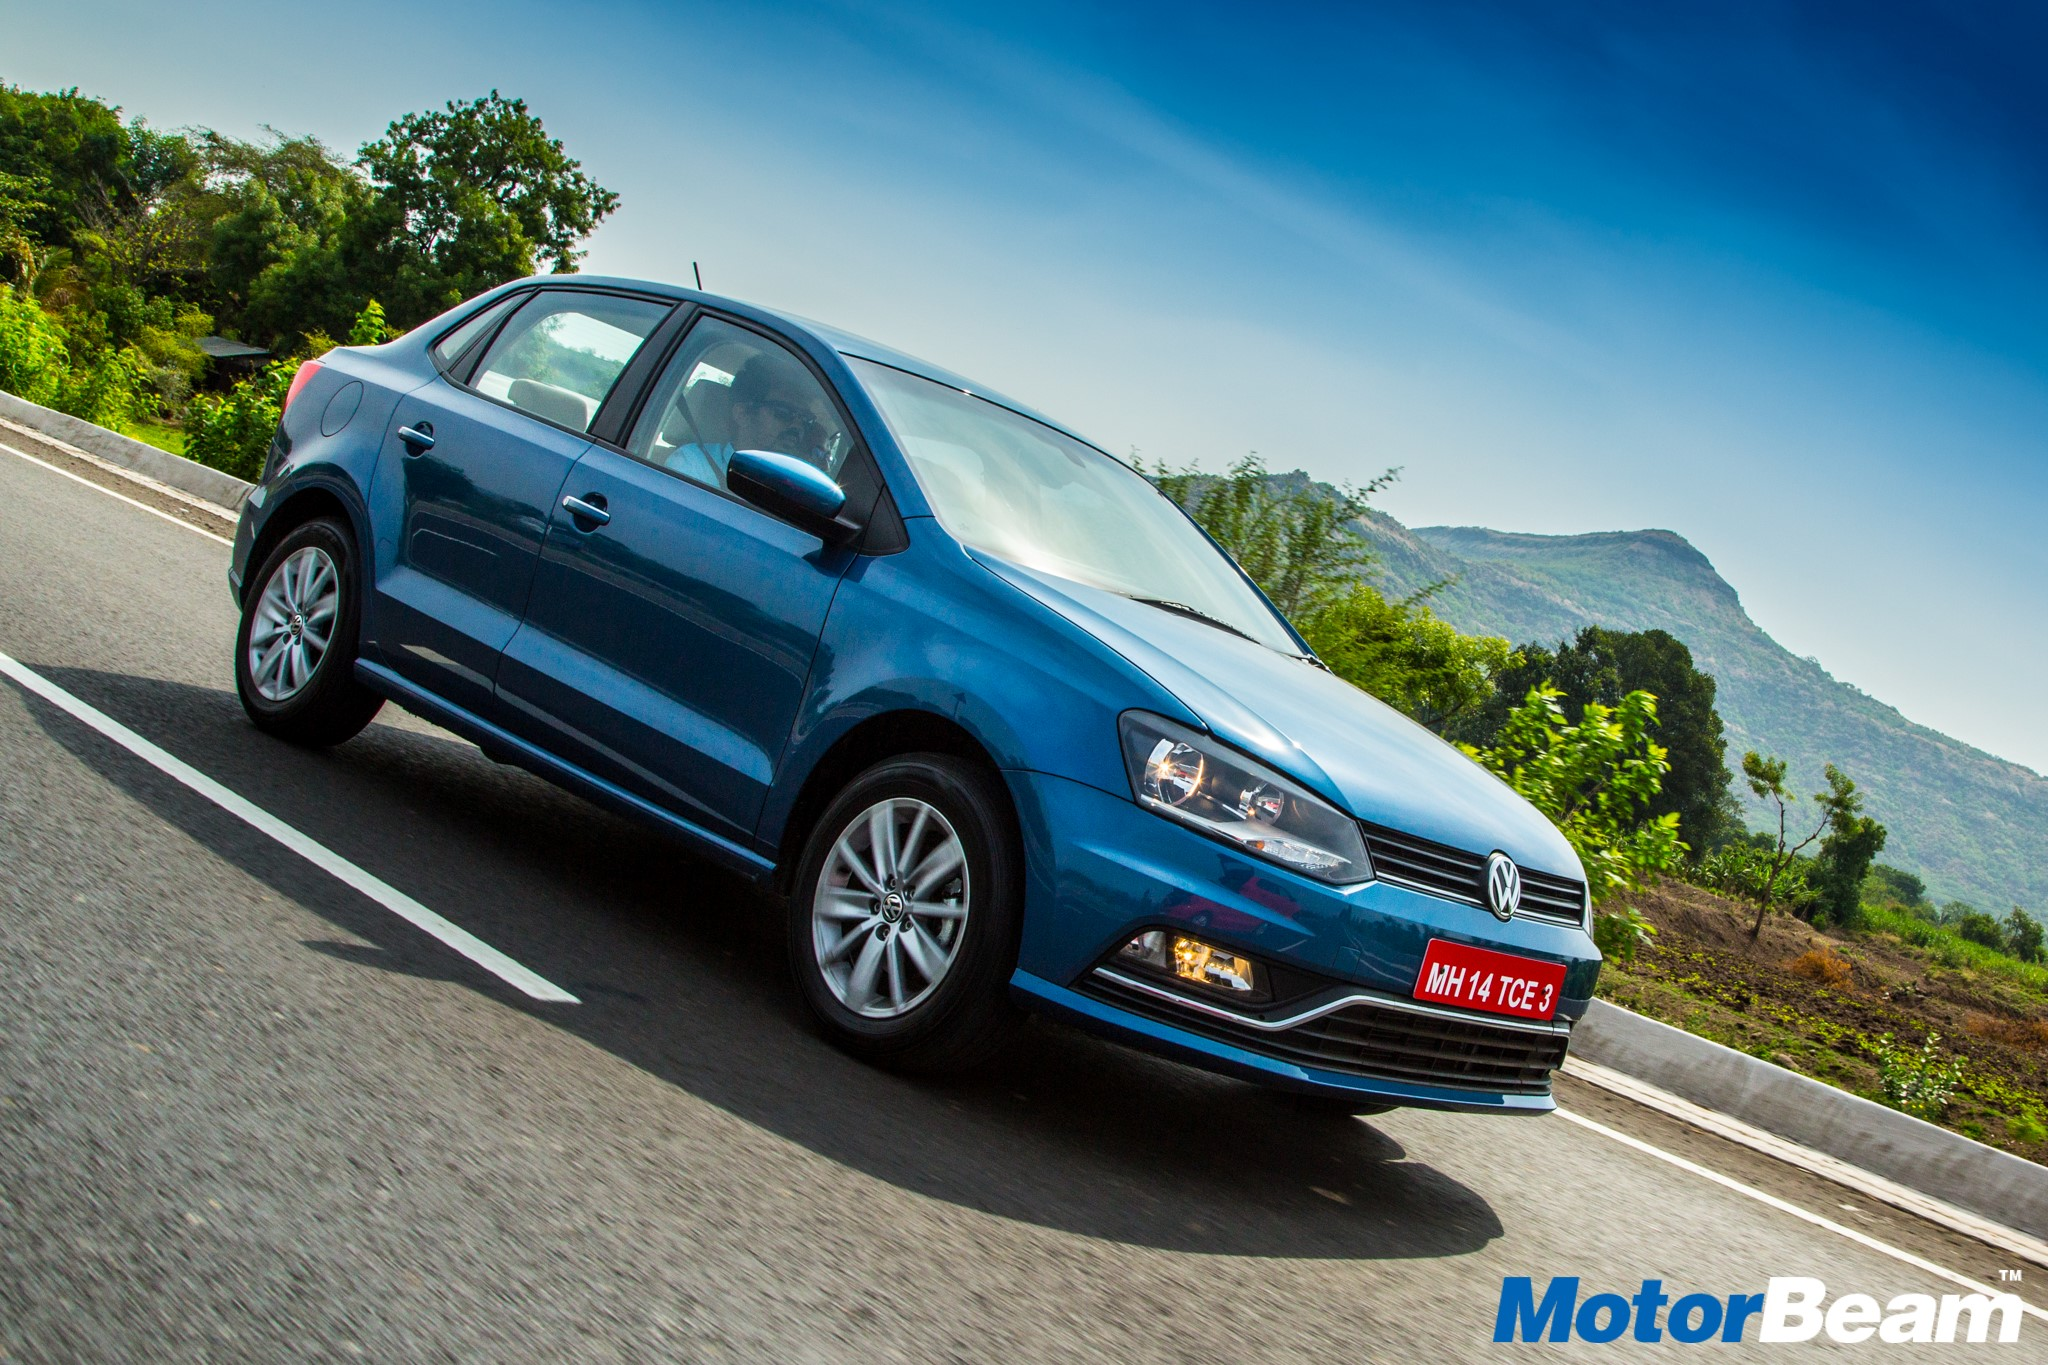 Volkswagen Ameo DSG Issues Make It An Unreliable Car | MotorBeam